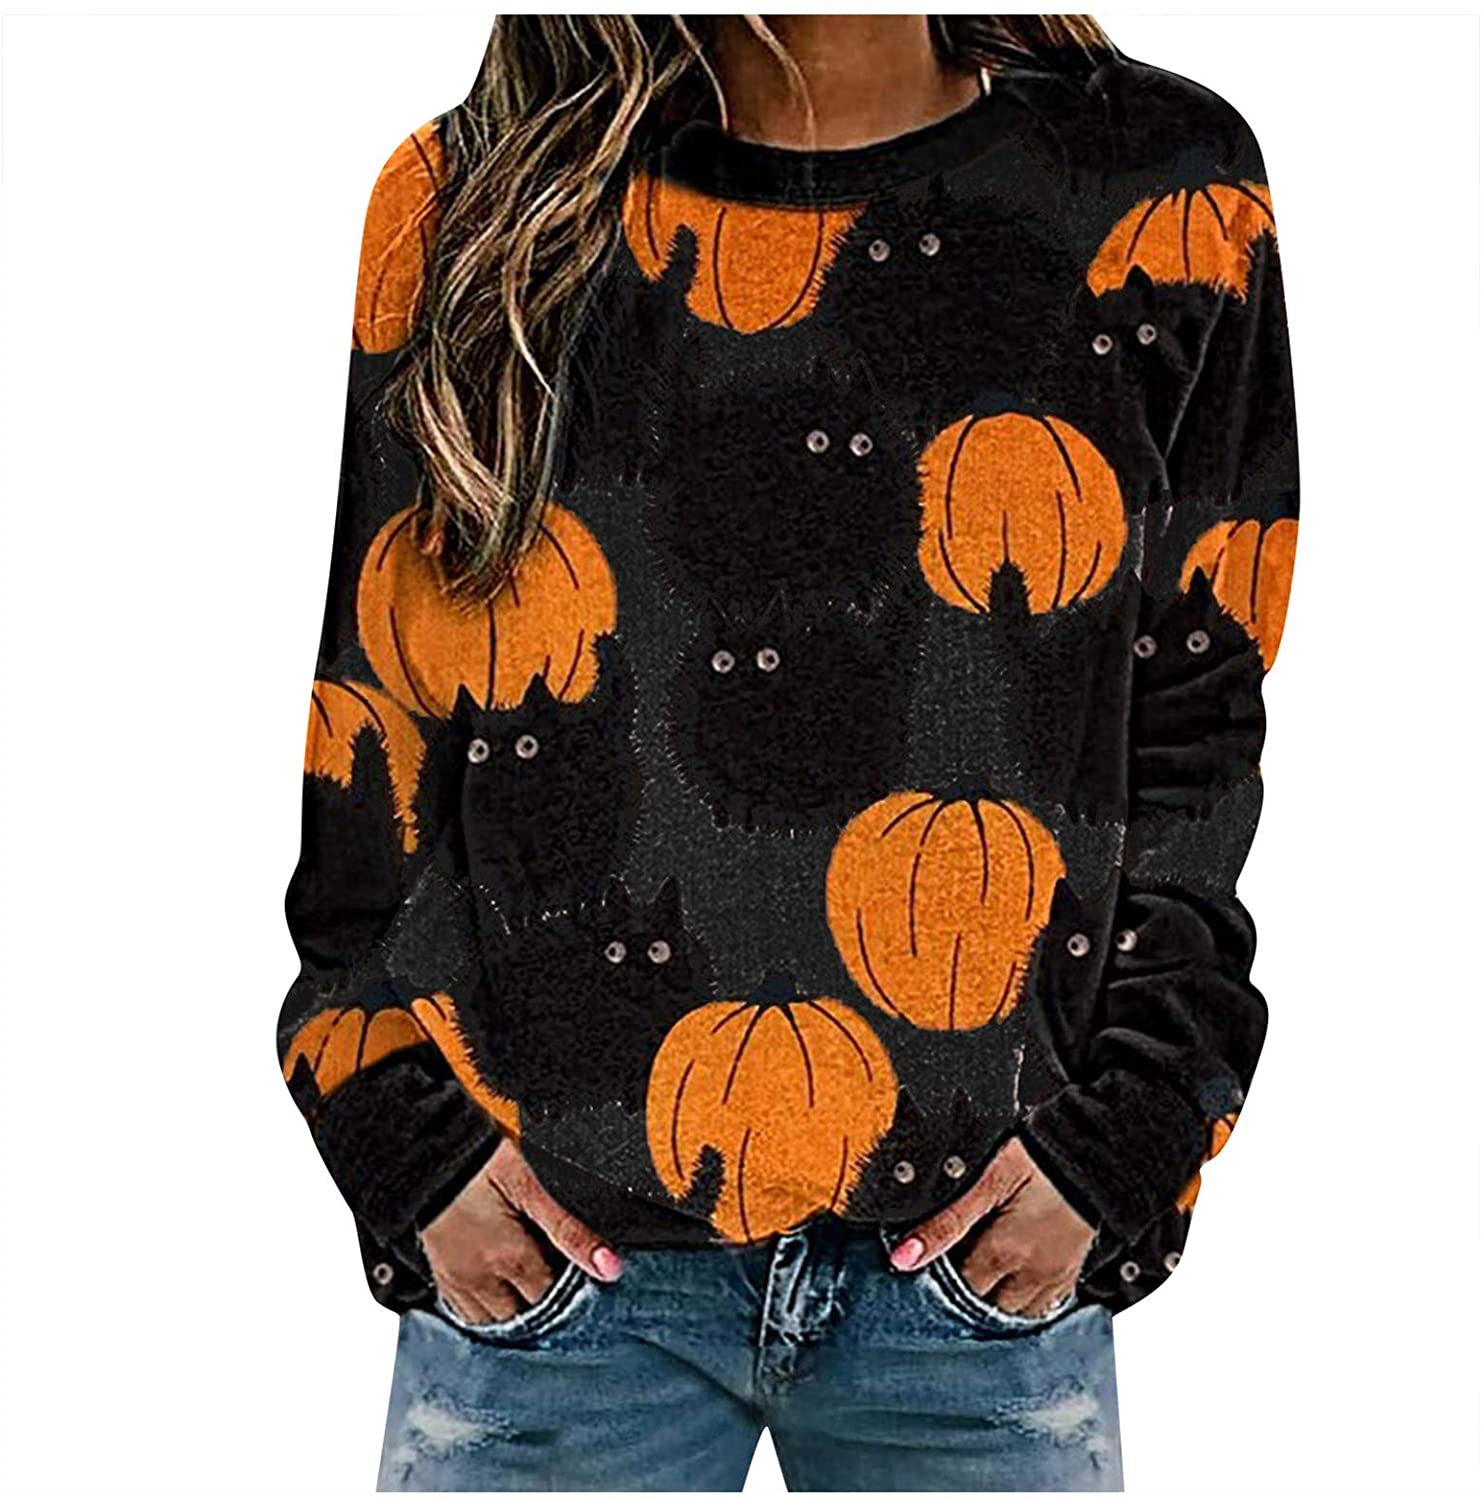 Womens Sweatshirts,Halloween Pumpkin Cat Shirts Casual Loose Fit Graphic Sweater Crewneck Blouse Long Sleeve Tops